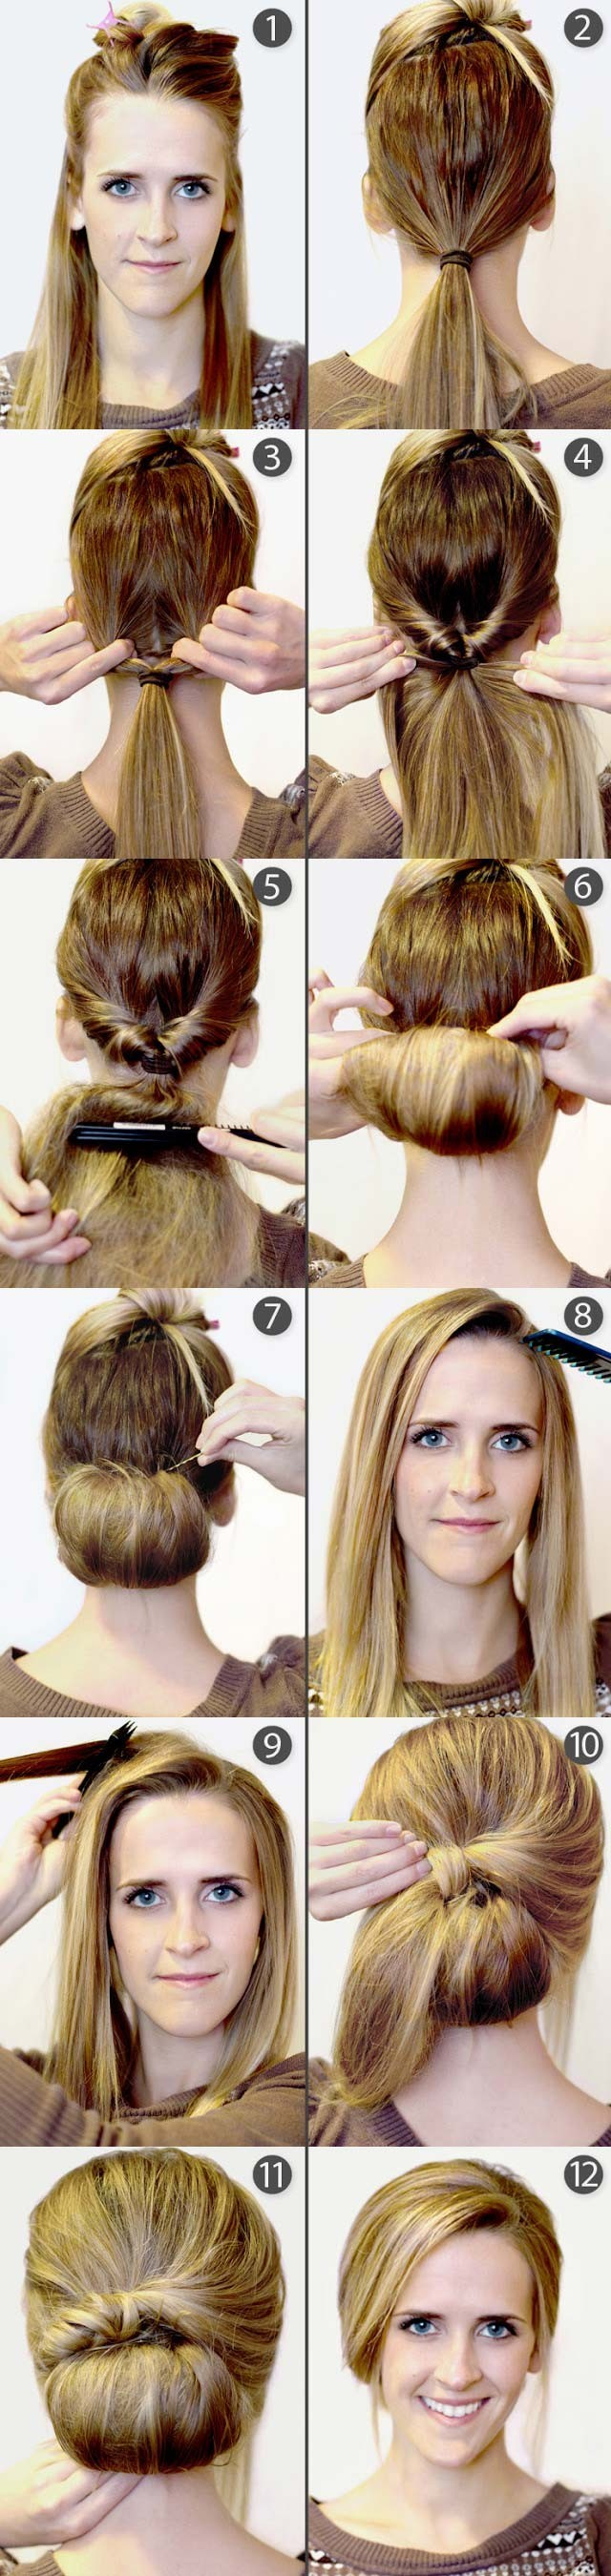 Hairstyles Step By Step 10 quick and easy hairstyles step by step braid hair tutorials braid hair and tutorials Retro Bouffant Bun Updos Tutorial